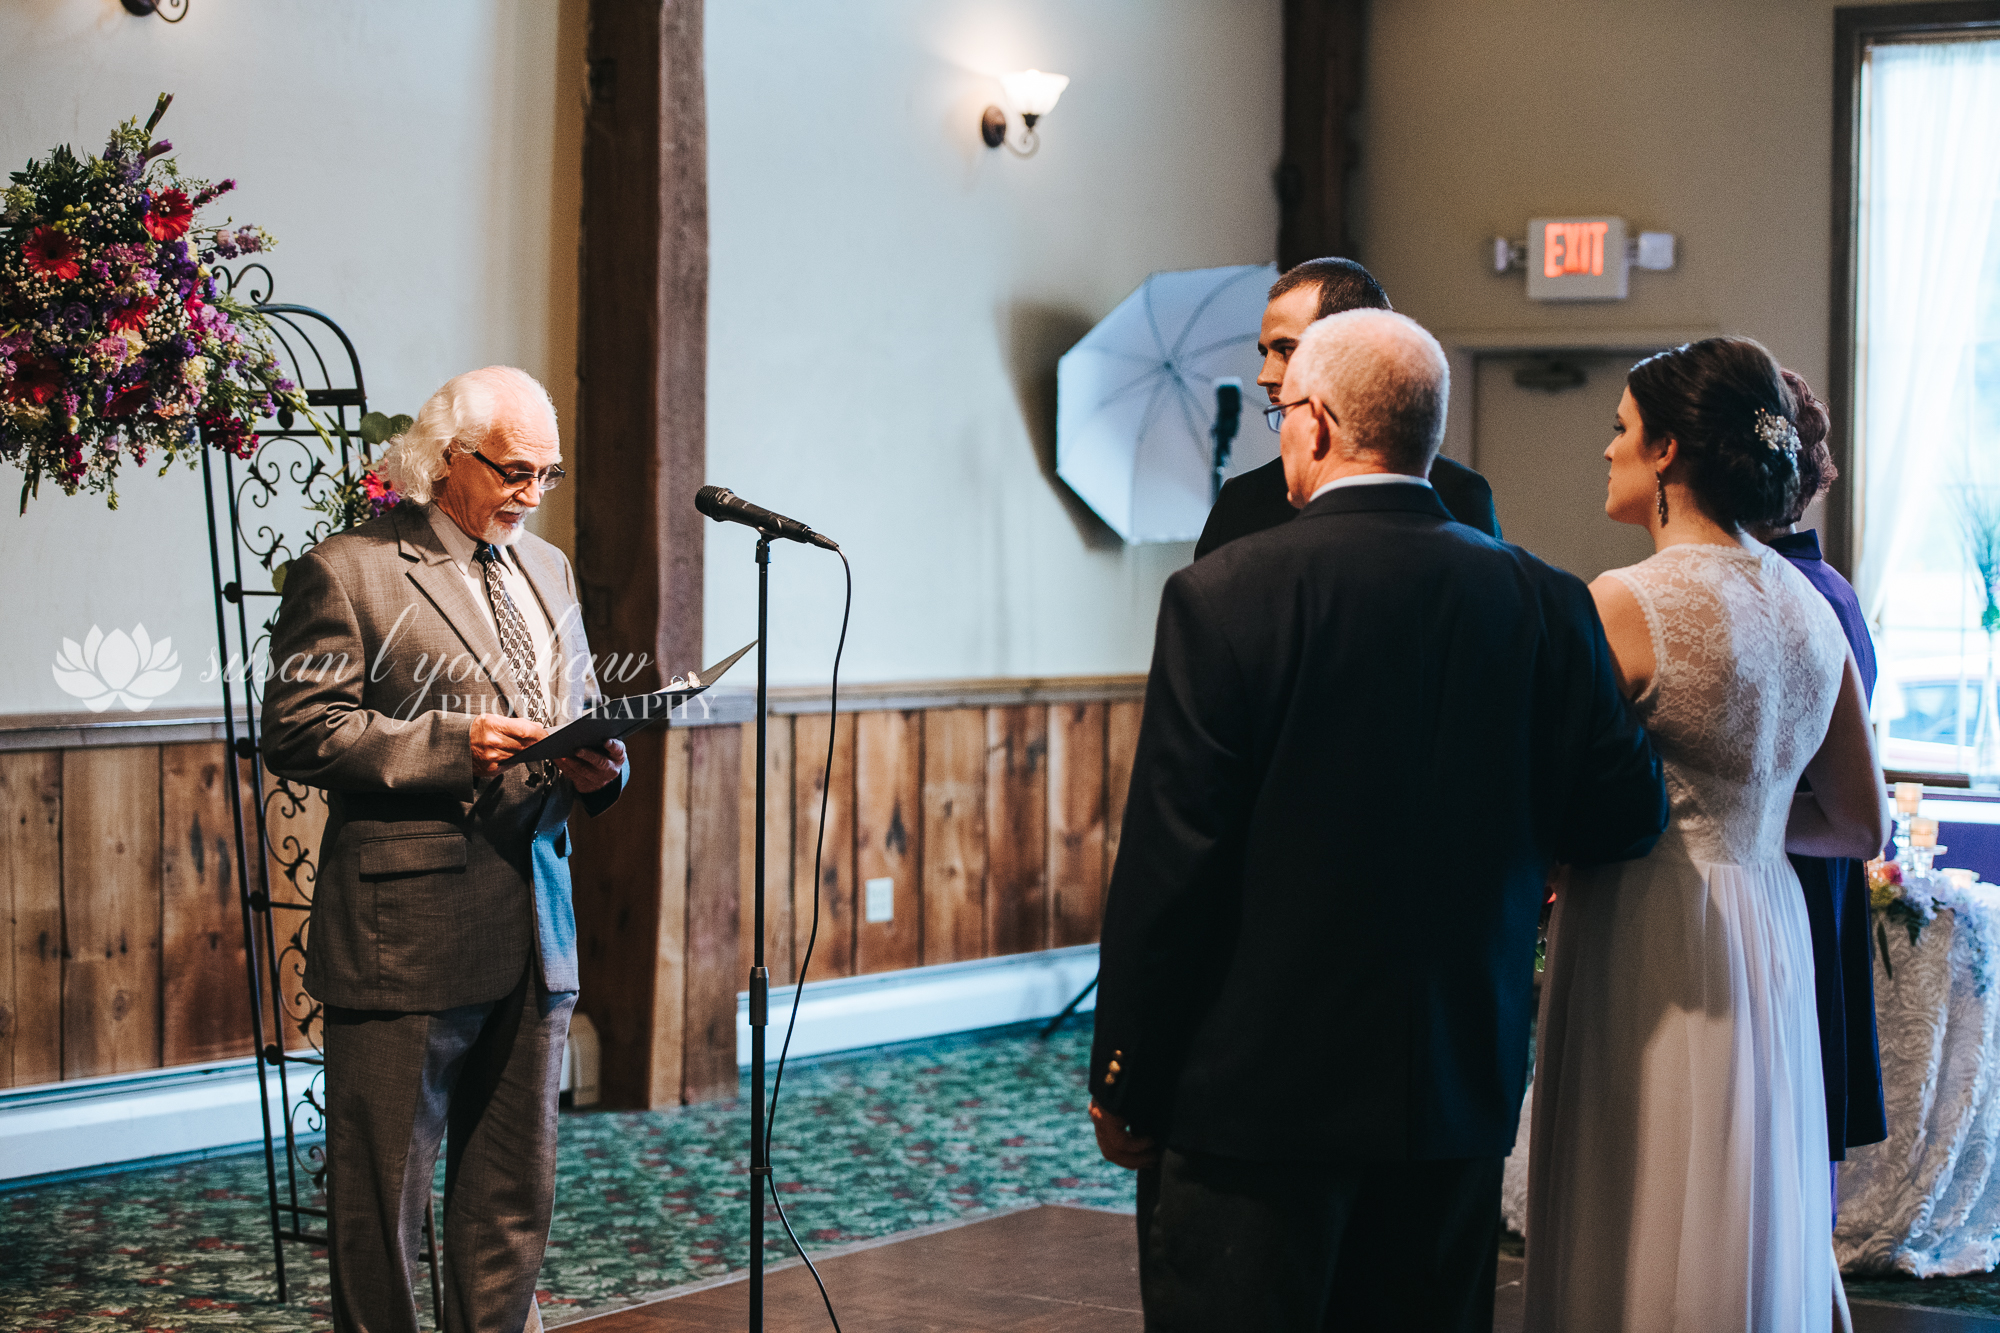 Adena and  Erik Wedding 05-17-2019 SLY Photography-86.jpg